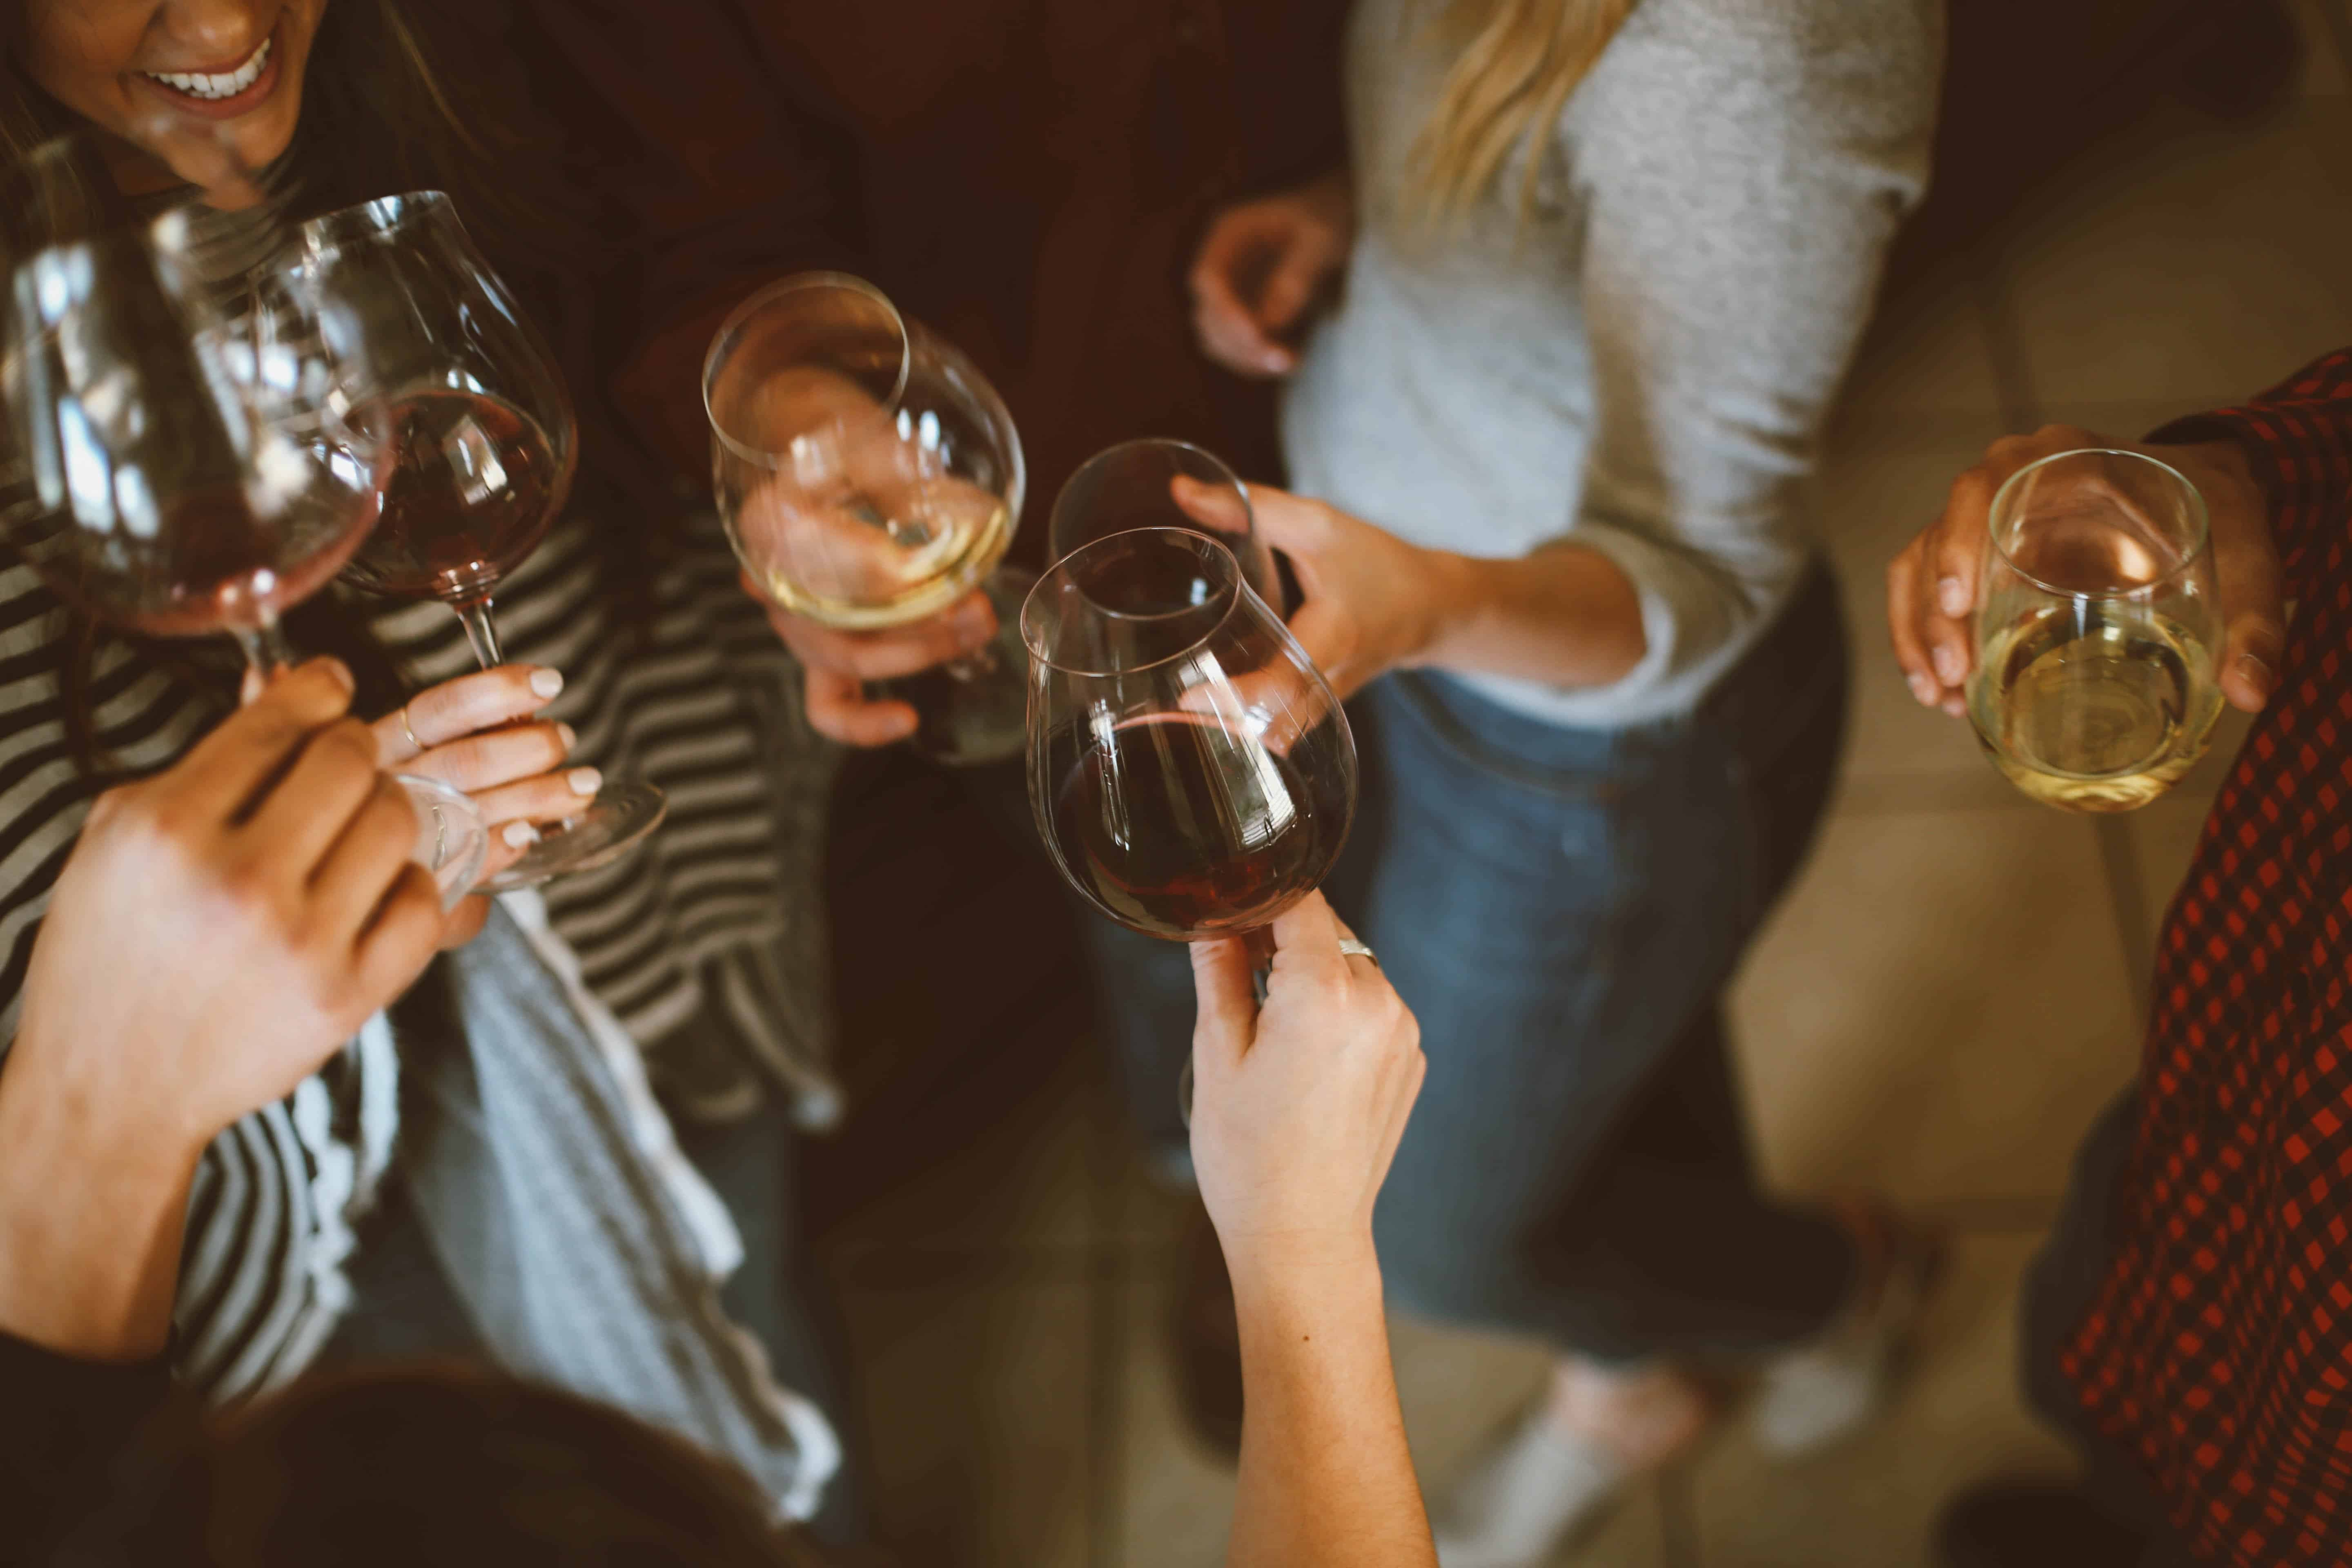 red wine, white wine, culture facts